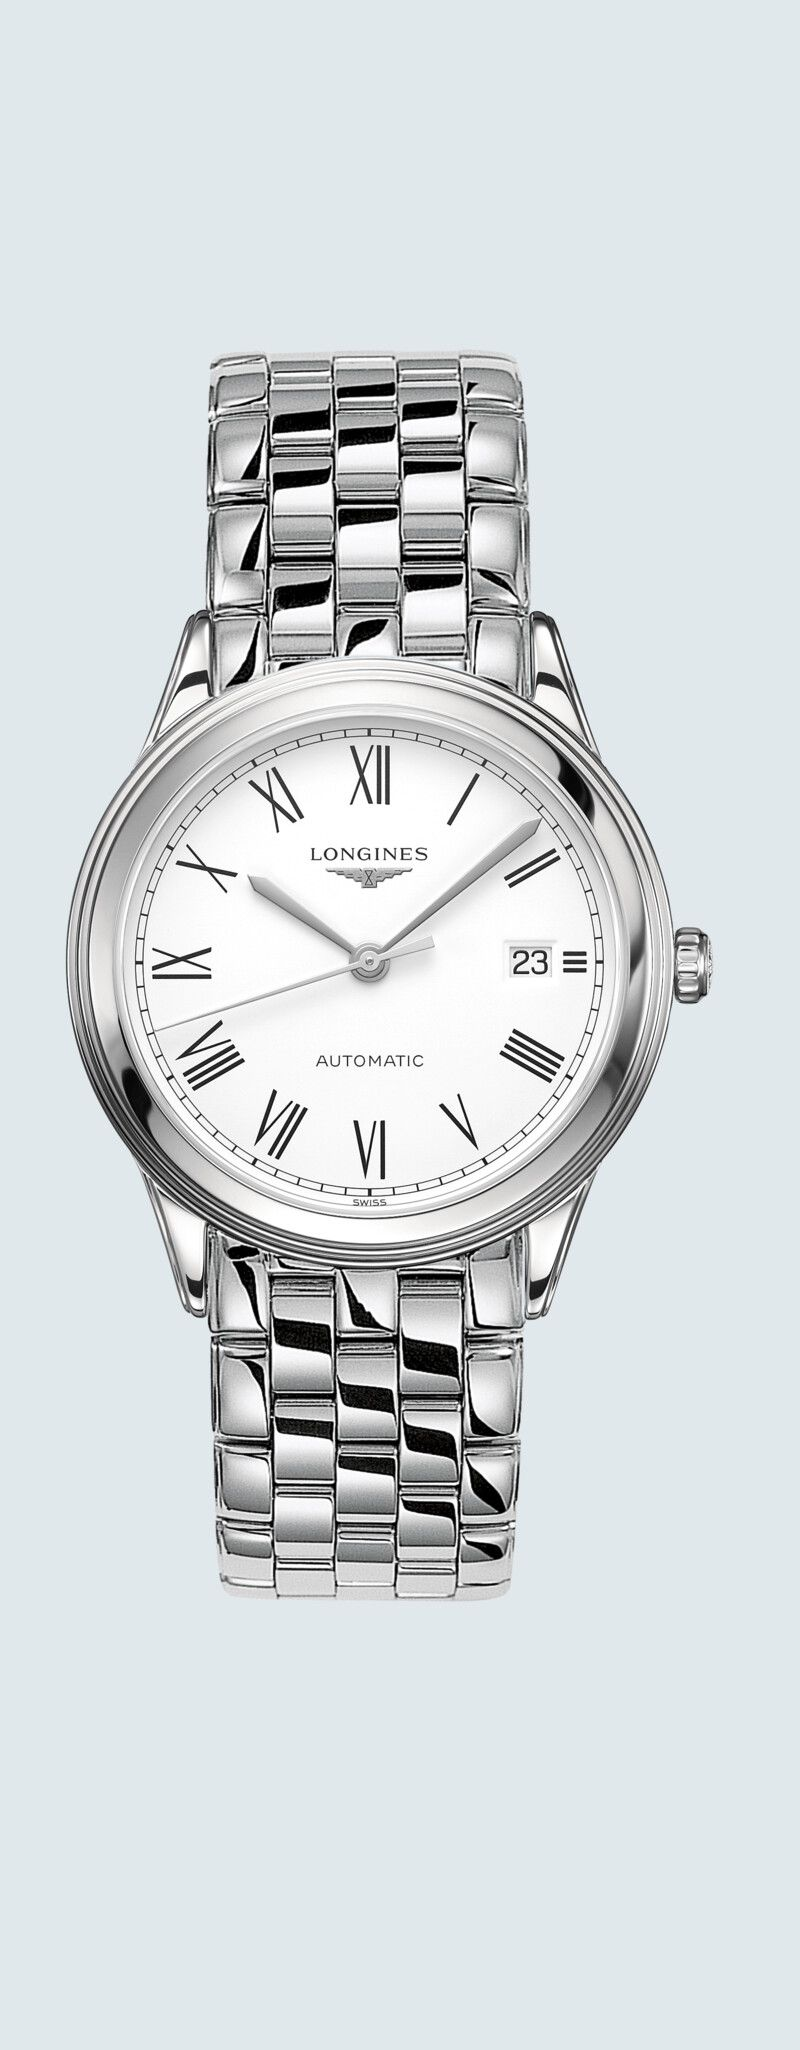 38.50 mm Stainless steel case with White matt dial and Stainless steel strap - case zoom view